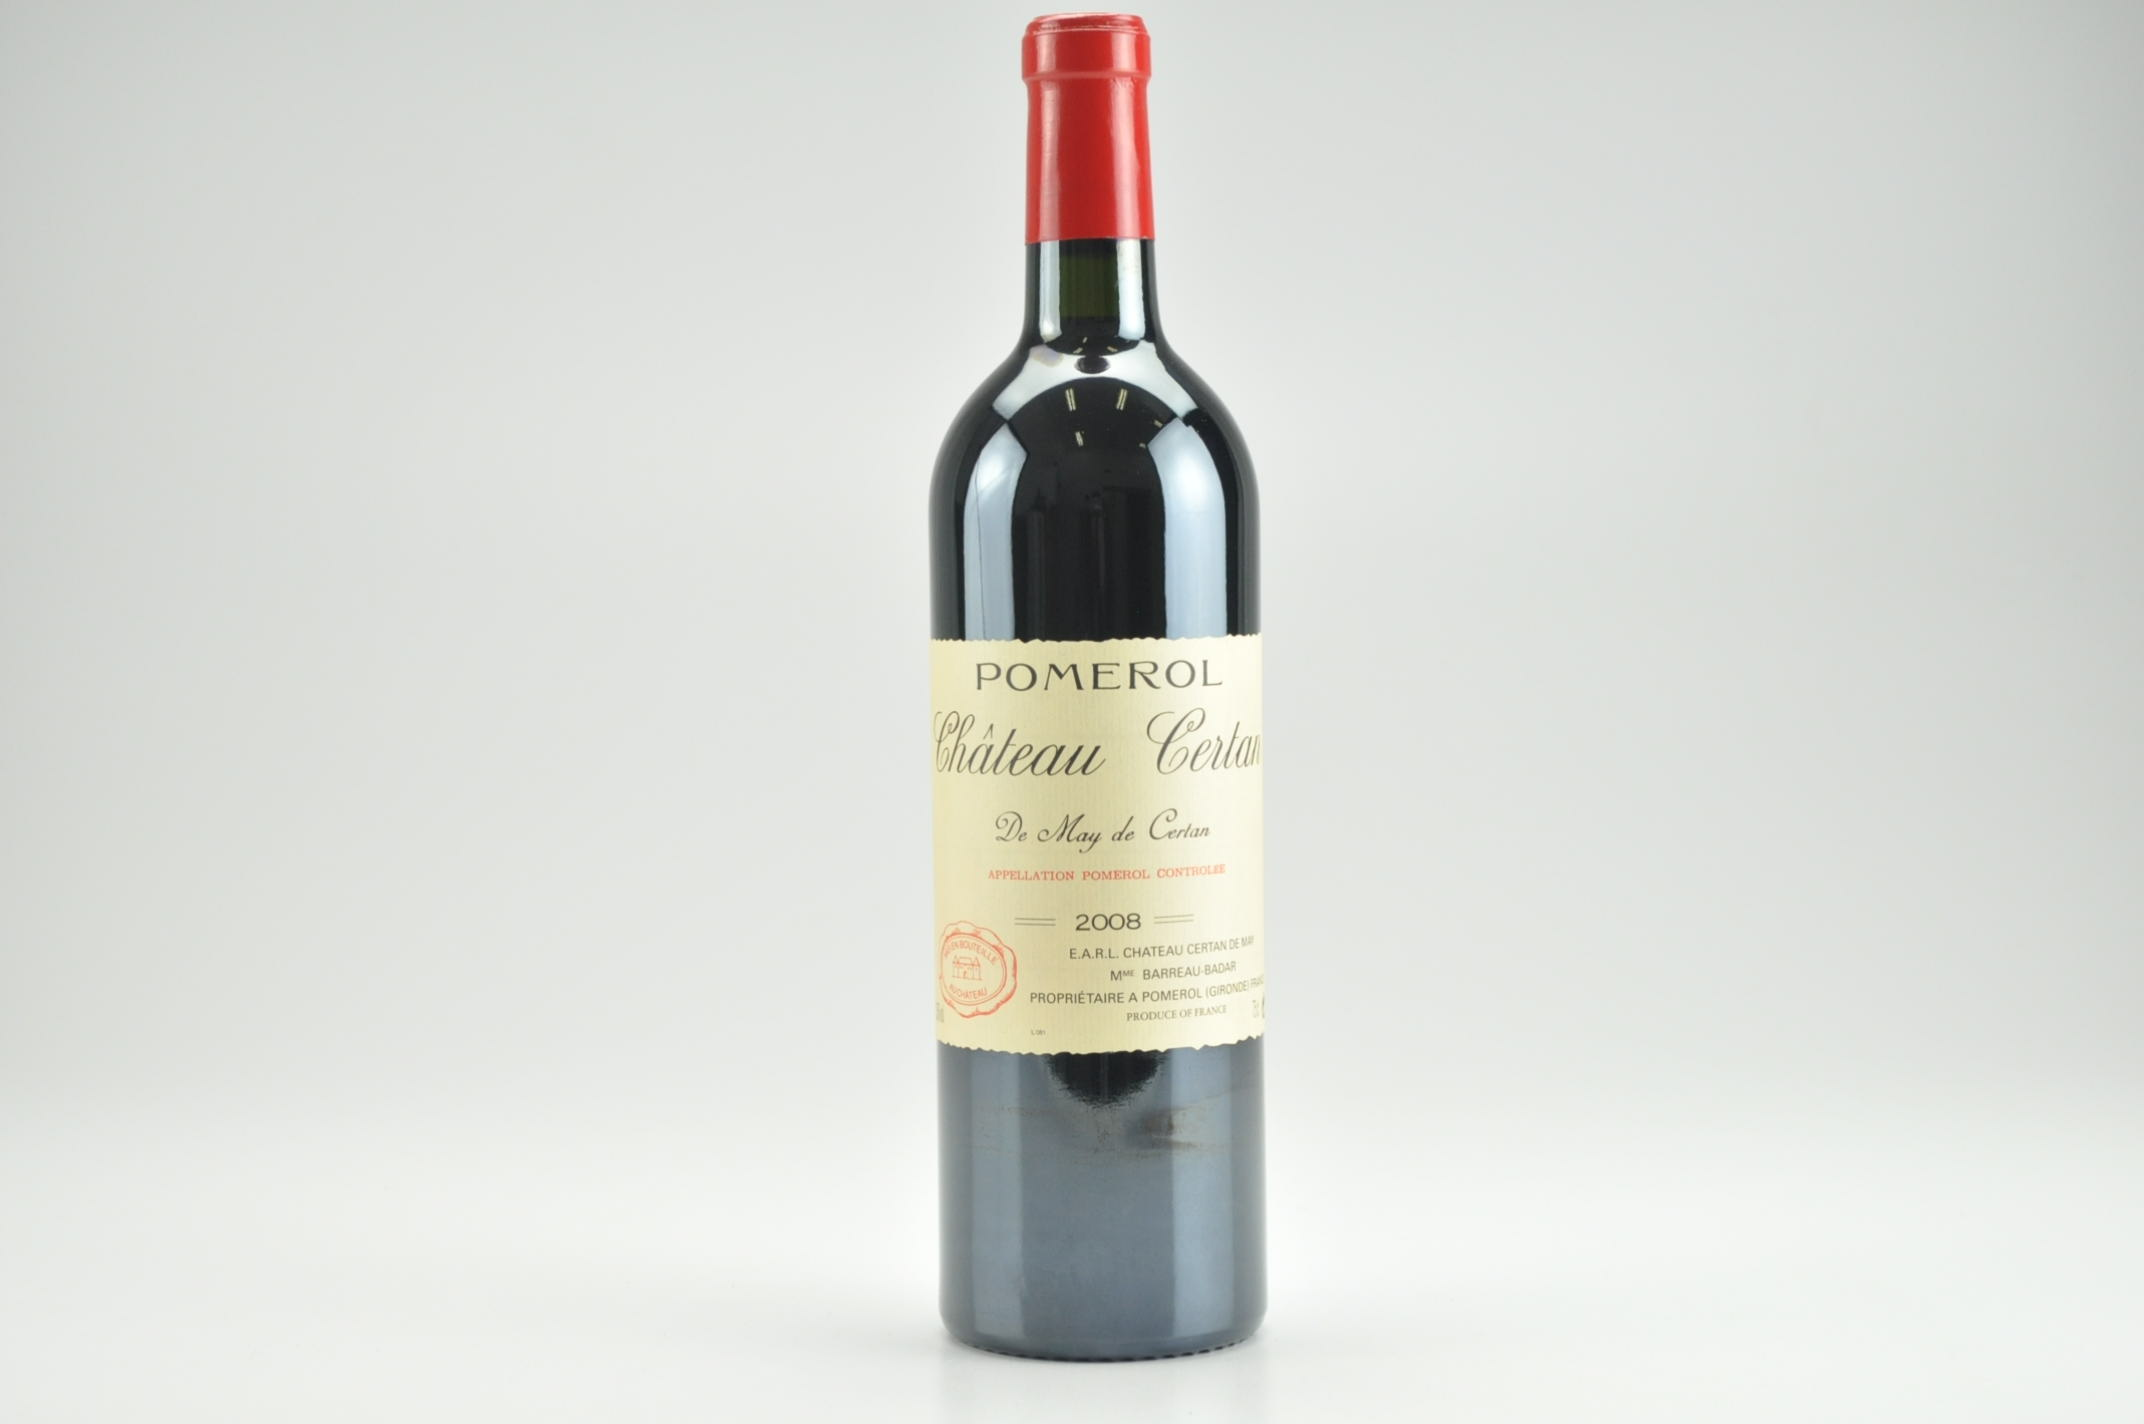 2008 Chateau Certan de May Bordeaux, Pomerol